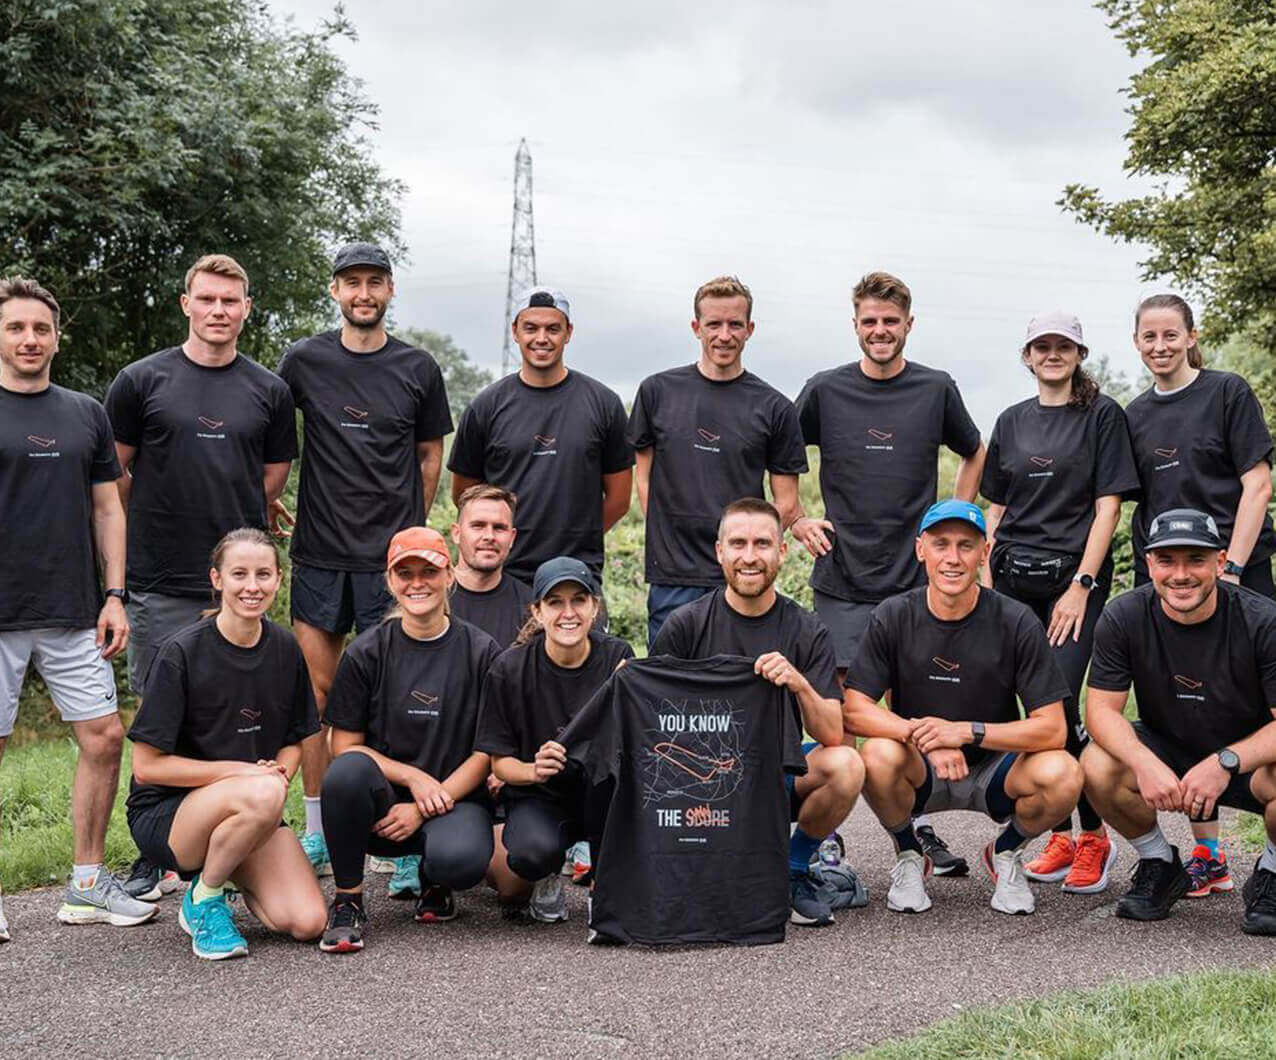 runners posing with kilometre club limited edition t shirt designs